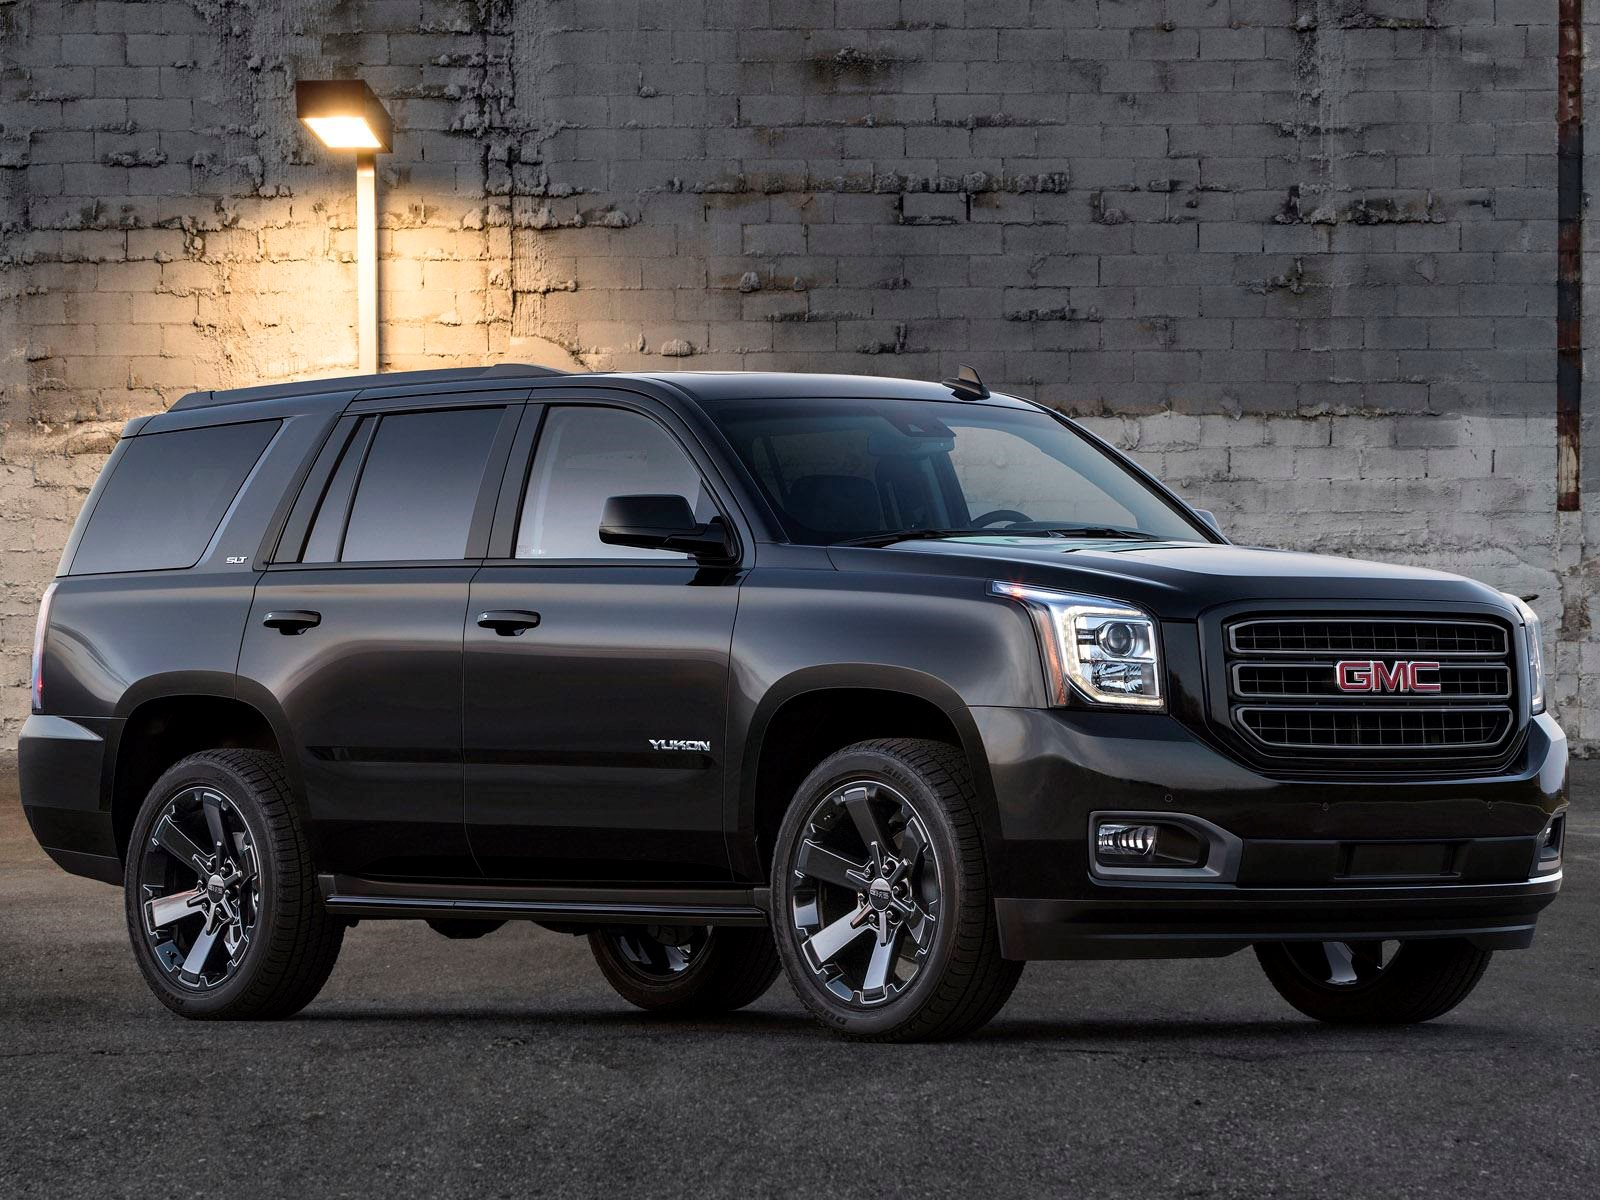 Gmc Yukon Gets Murdered Out Graphite Editions Carbuzz